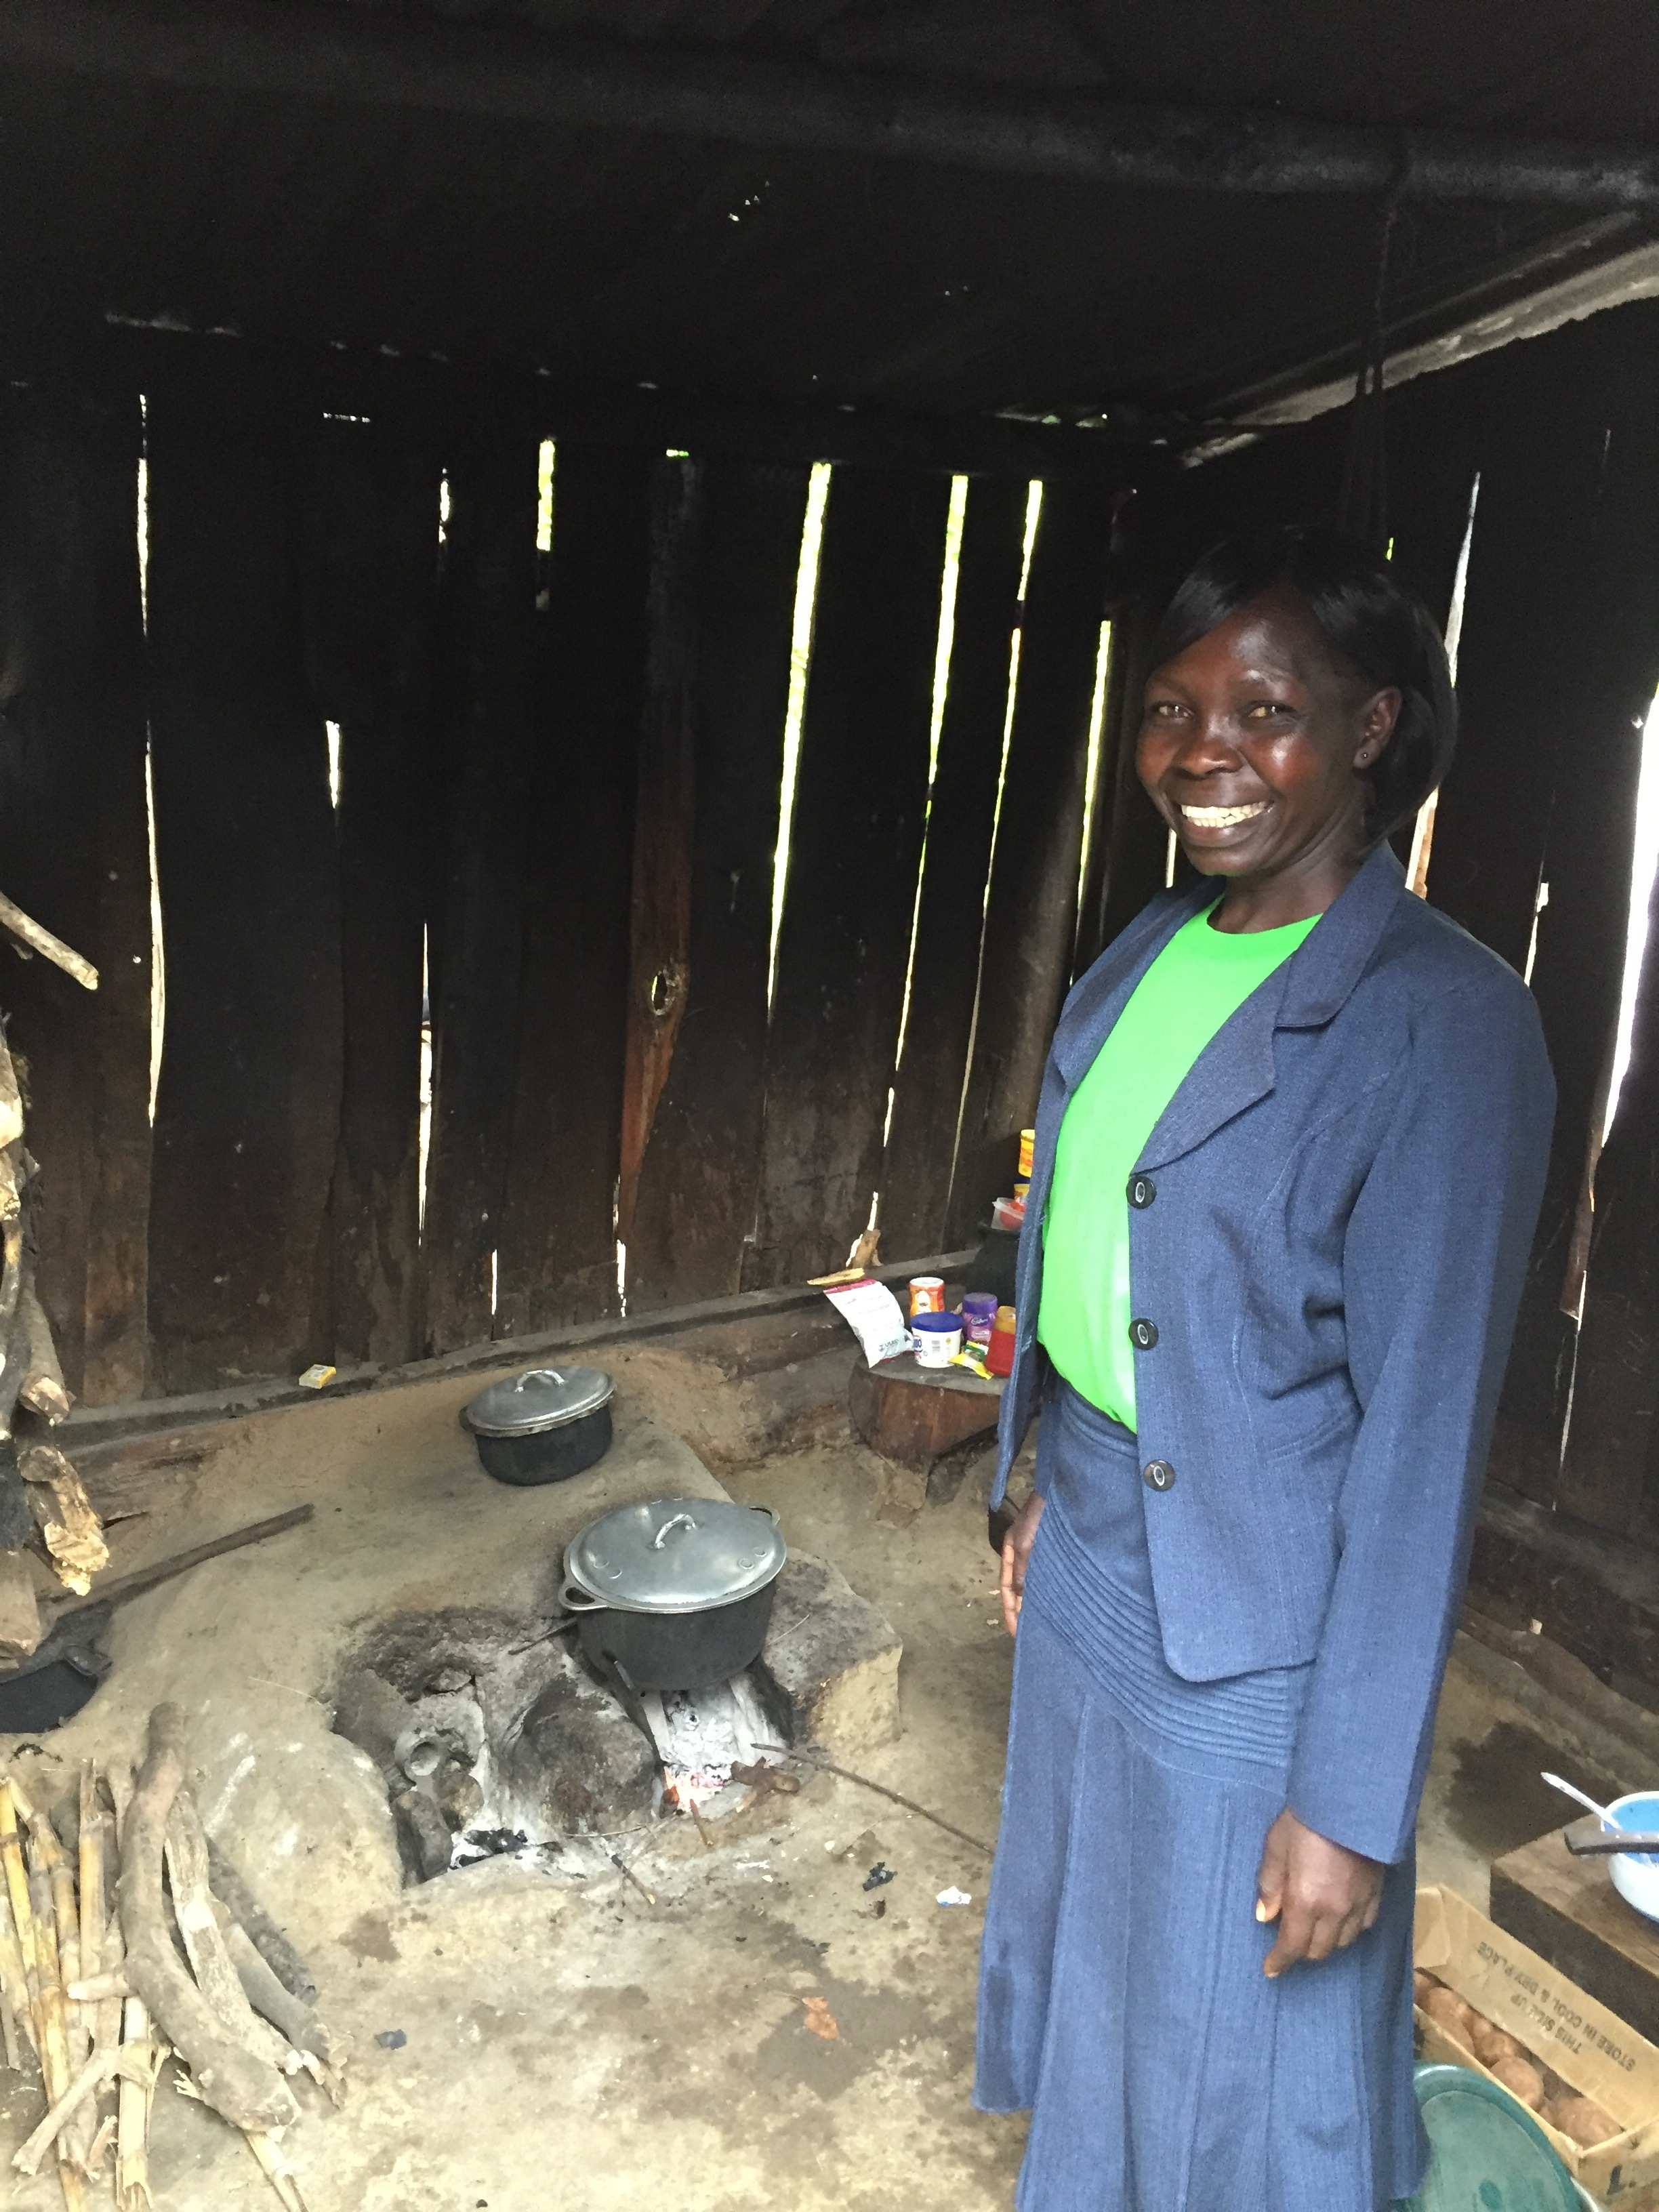 Helen, the community health worker extraordinaire in Simit. Showing us her kitchen where she prepared the masala tea and mandazi